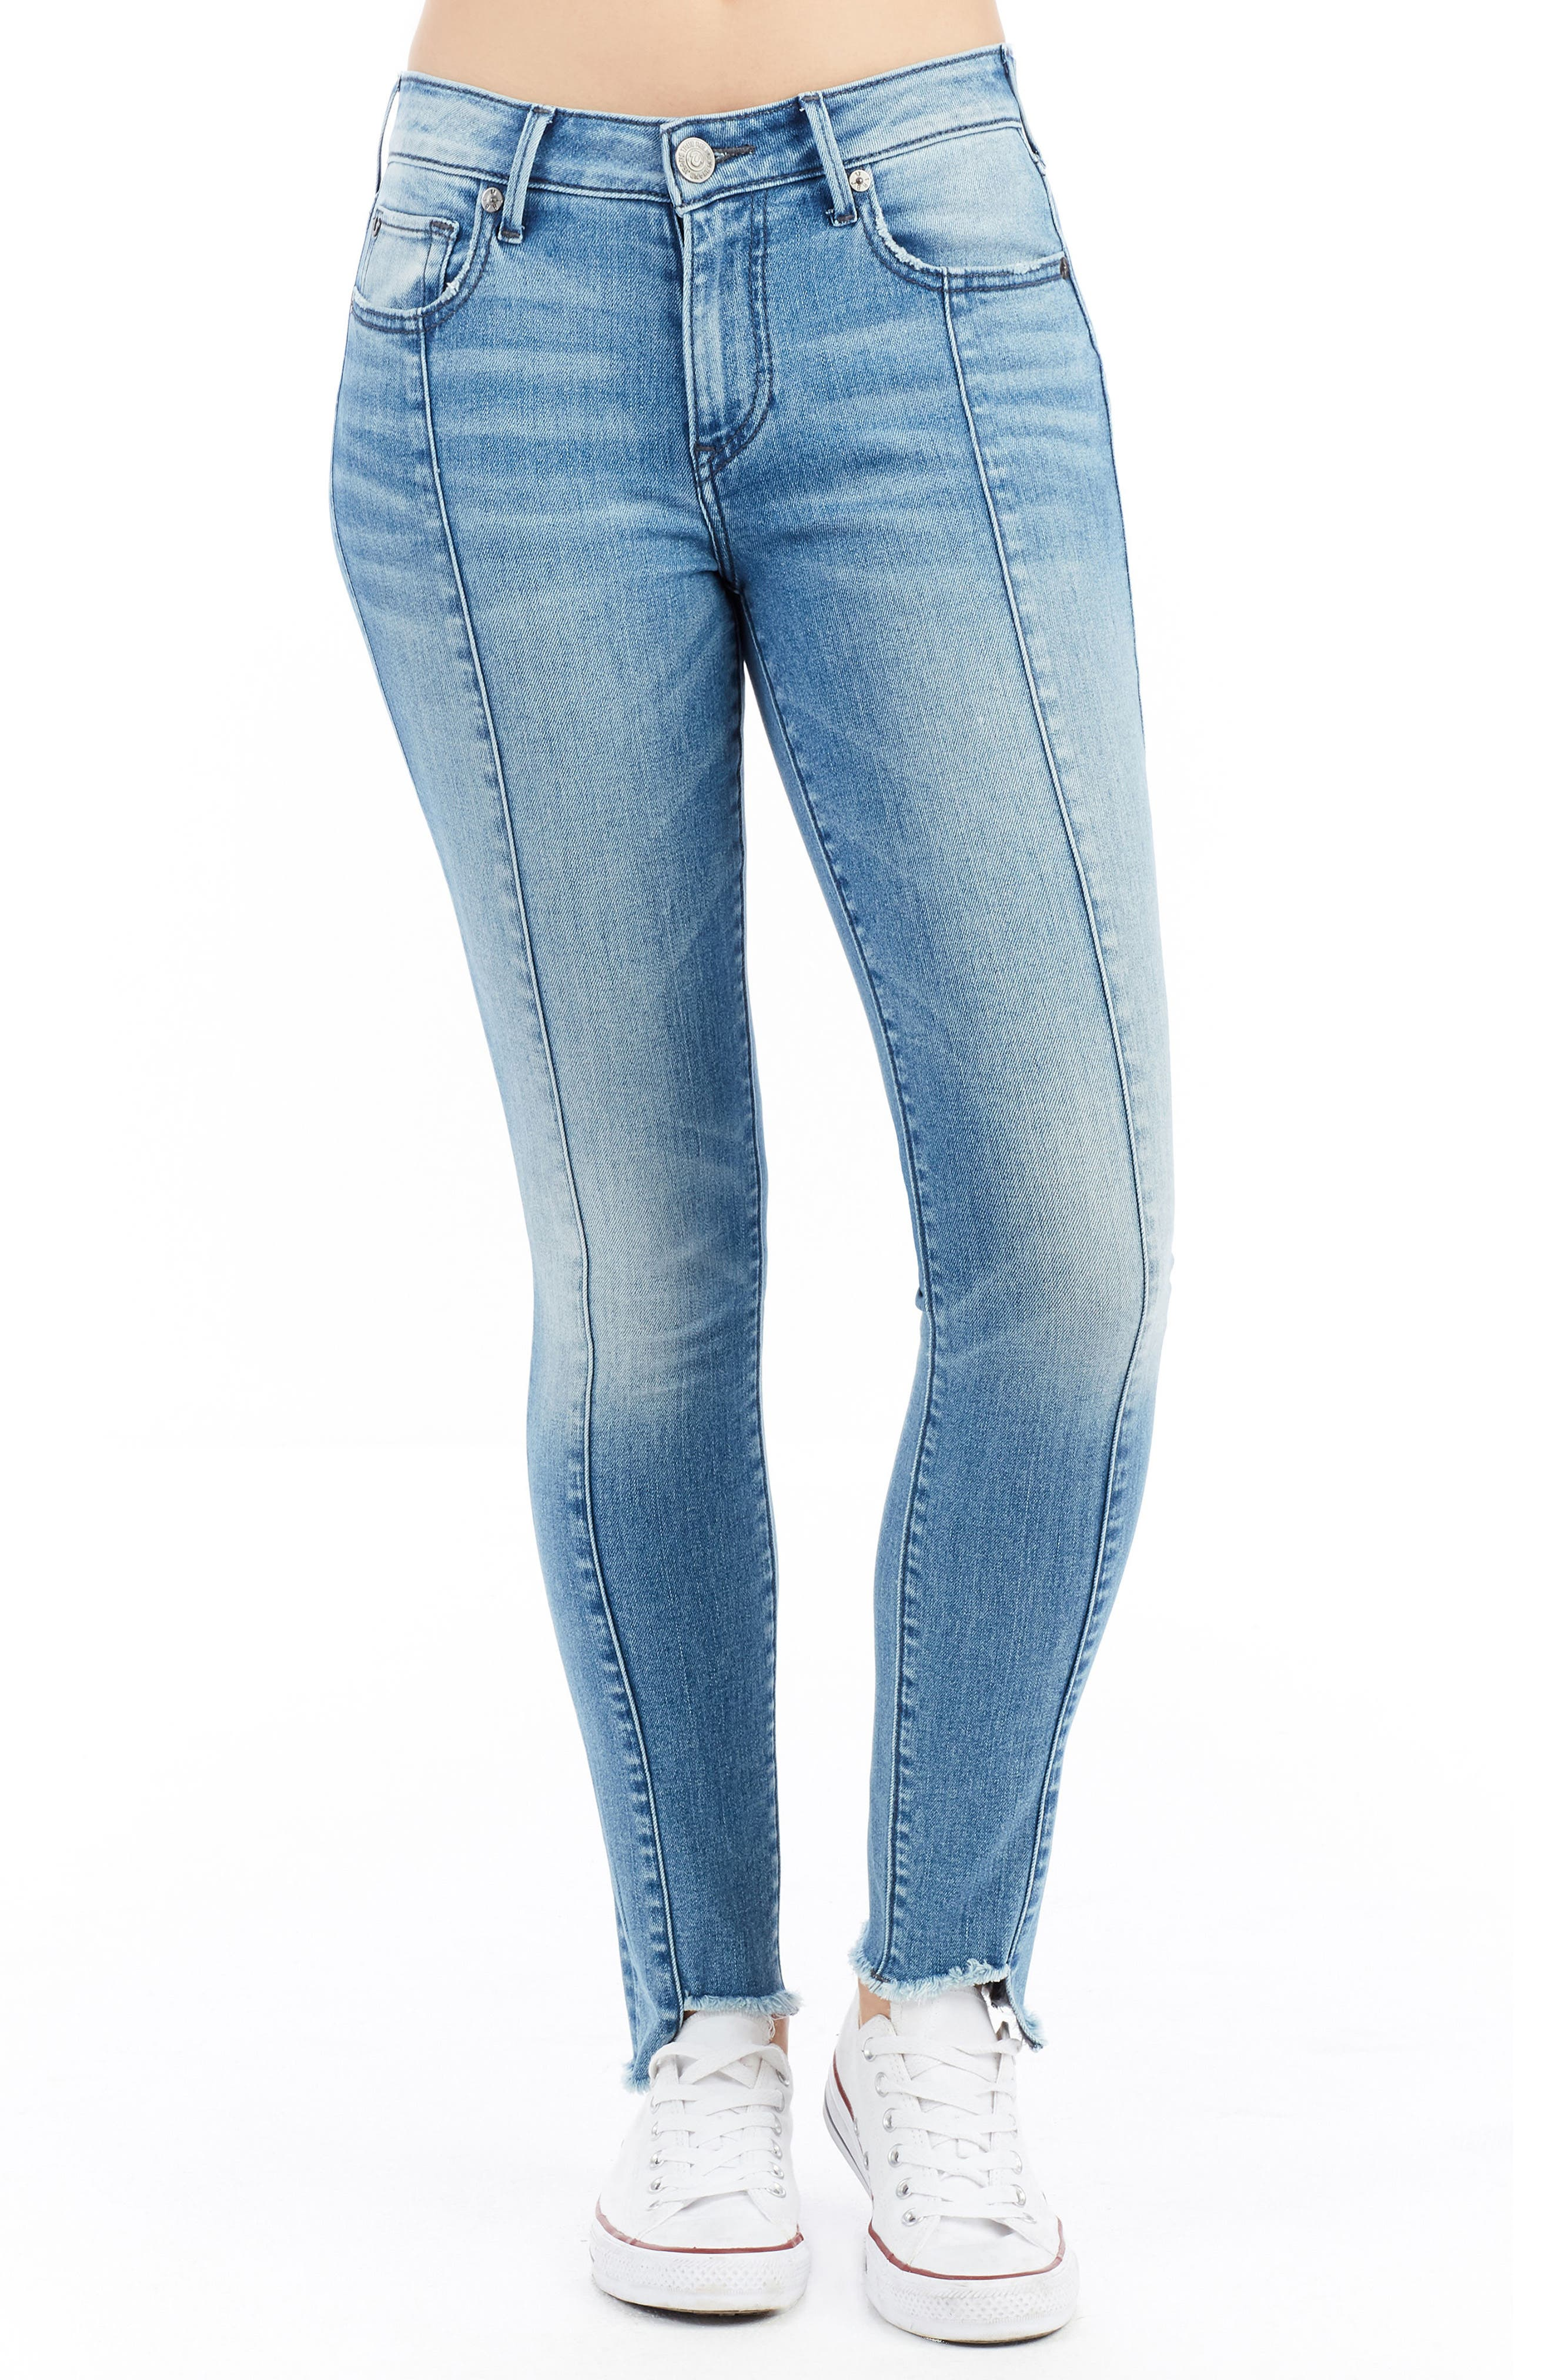 Jennie Curvy Ankle Skinny Jeans,                             Main thumbnail 1, color,                             Island Fever